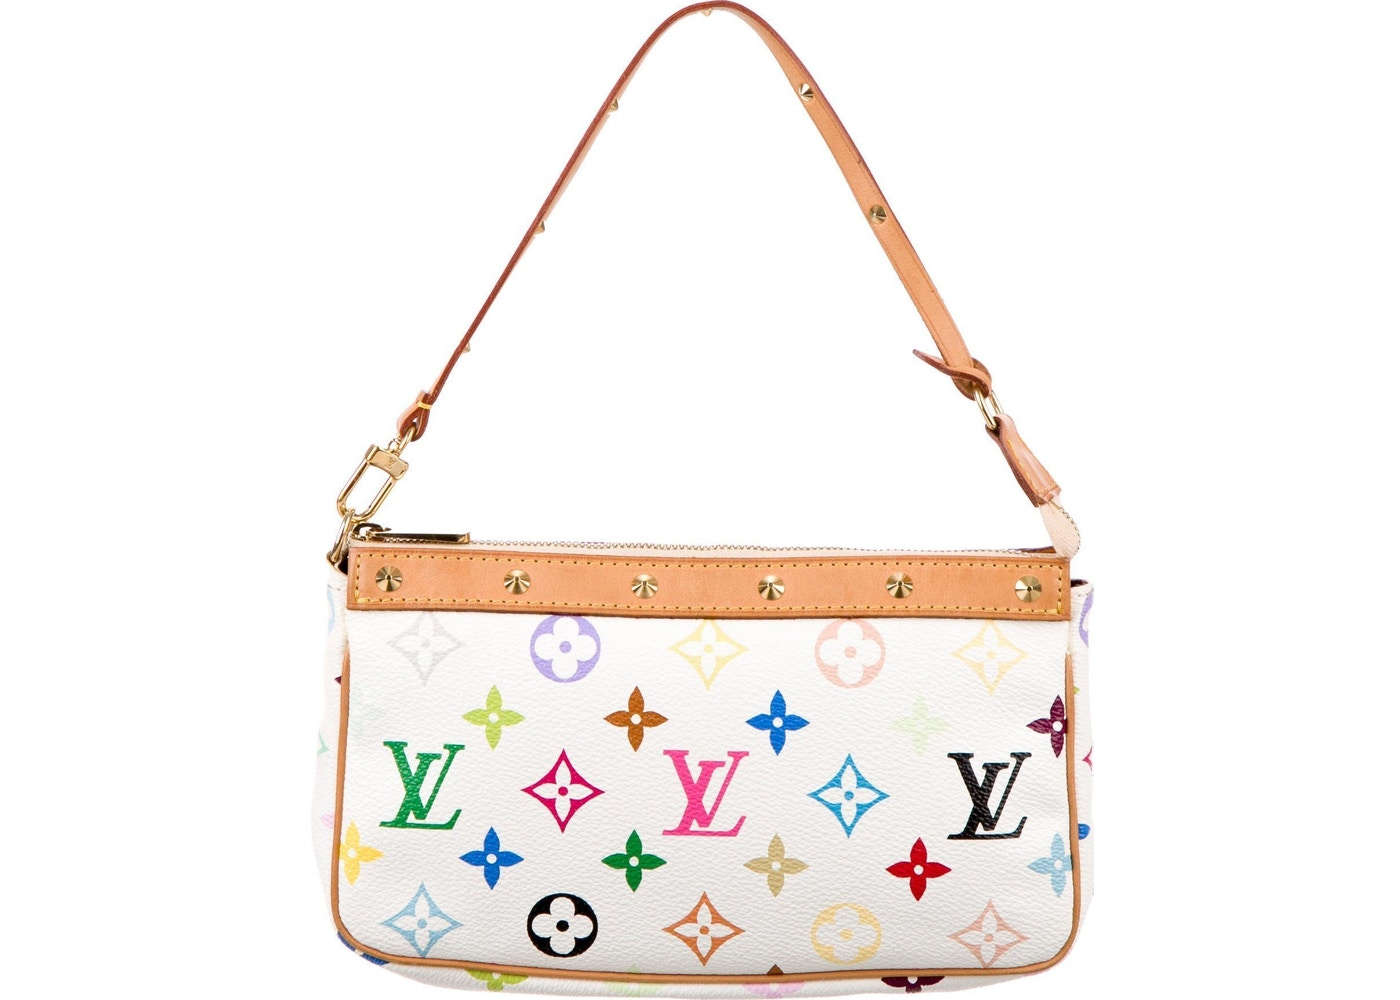 da124f2a1c1d Louis Vuitton Pochette Monogram Multicolore White. Monogram Multicolore  White